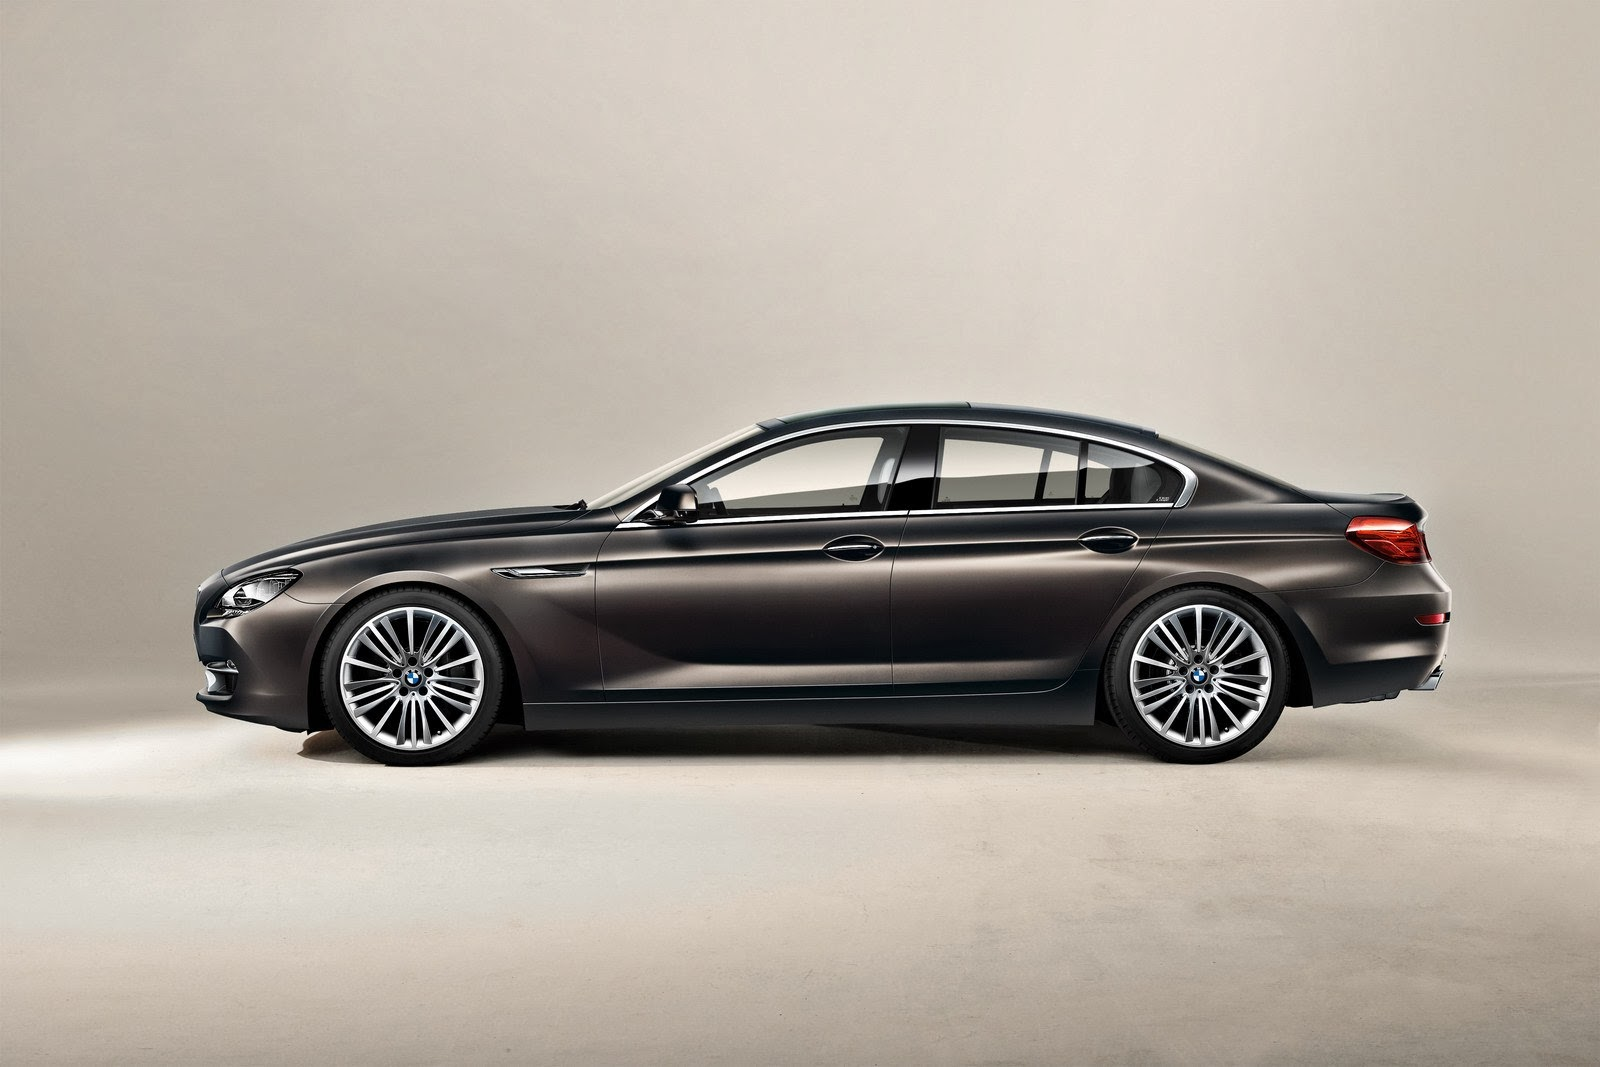 bmw 4 series gran coupe photos just welcome to automotive. Black Bedroom Furniture Sets. Home Design Ideas